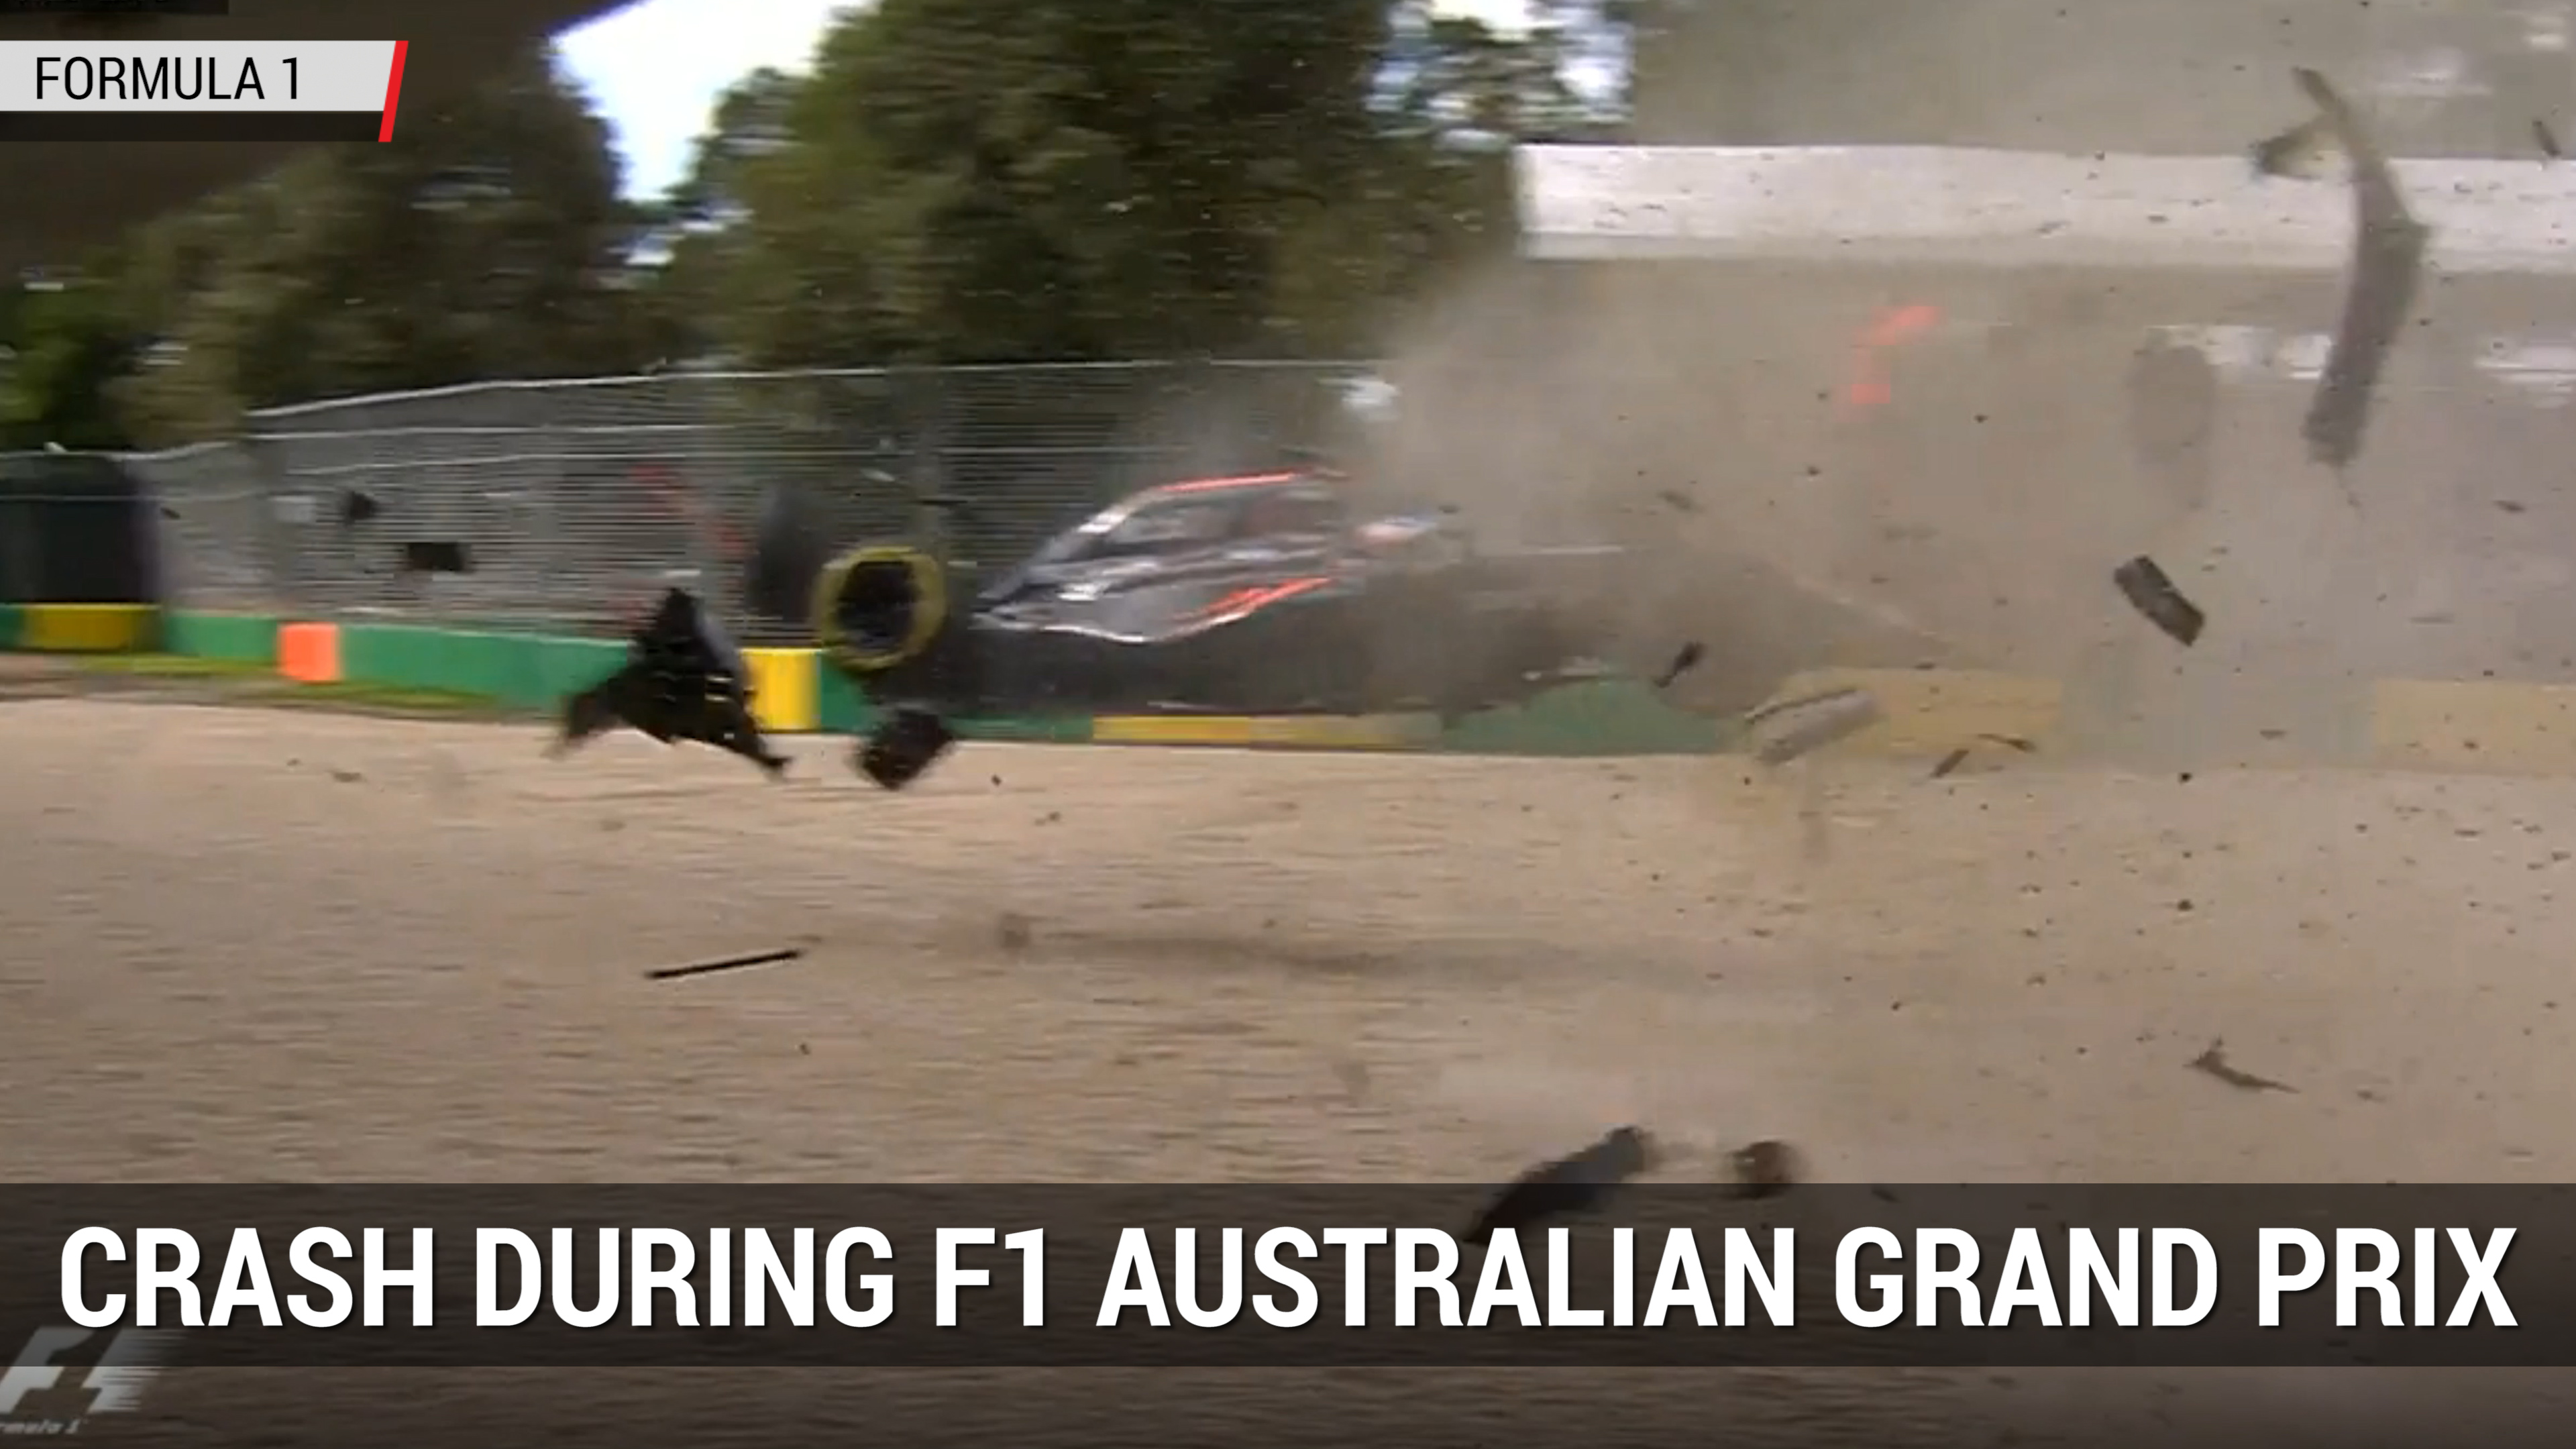 Dramatic Crash During Formula 1 Australian Grand Prix | Autoblog Minute